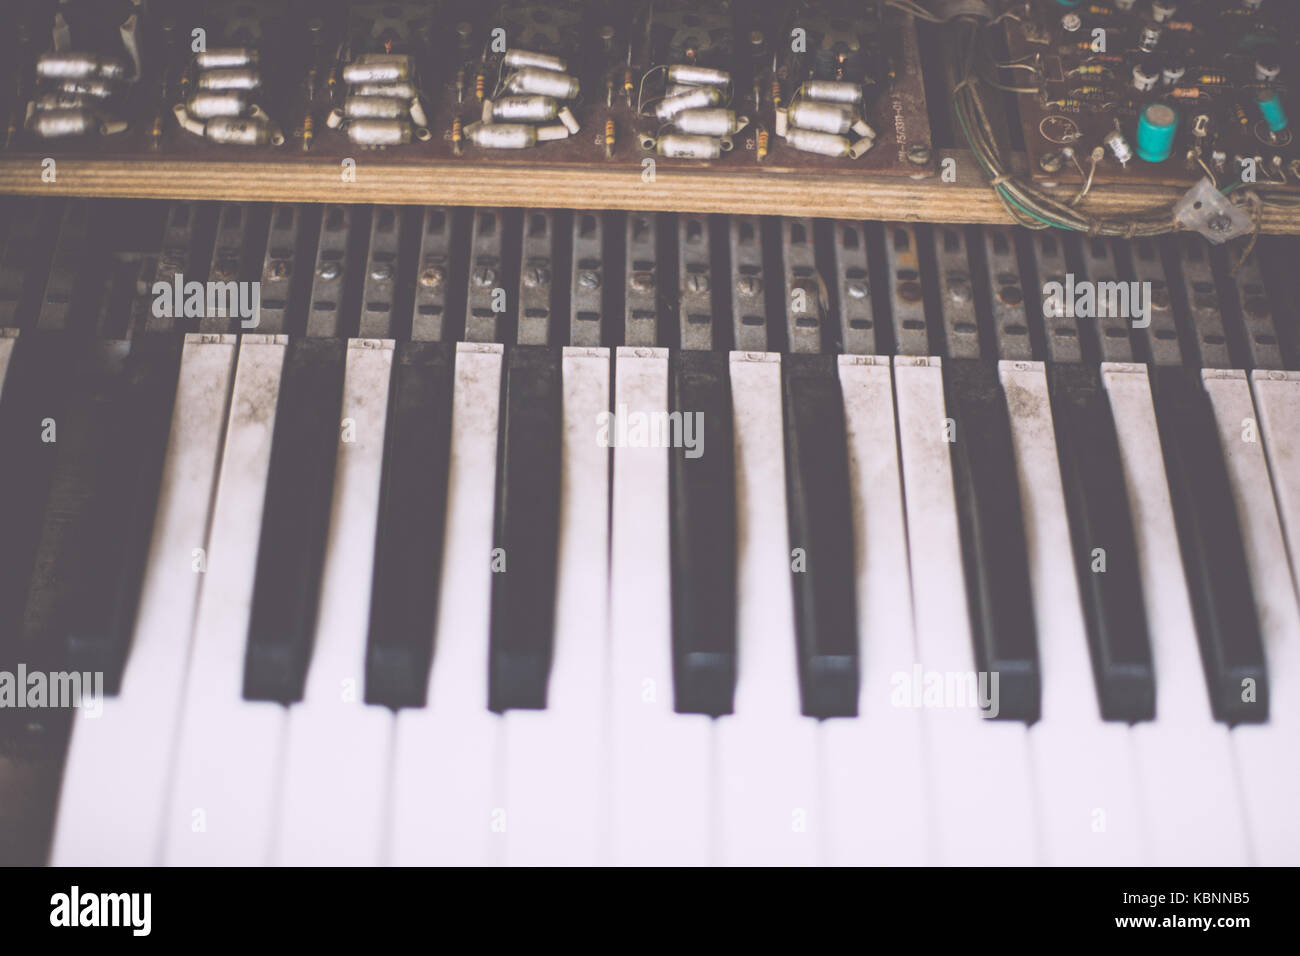 Old retro unnecessary faulty musical synthesizer - Stock Image